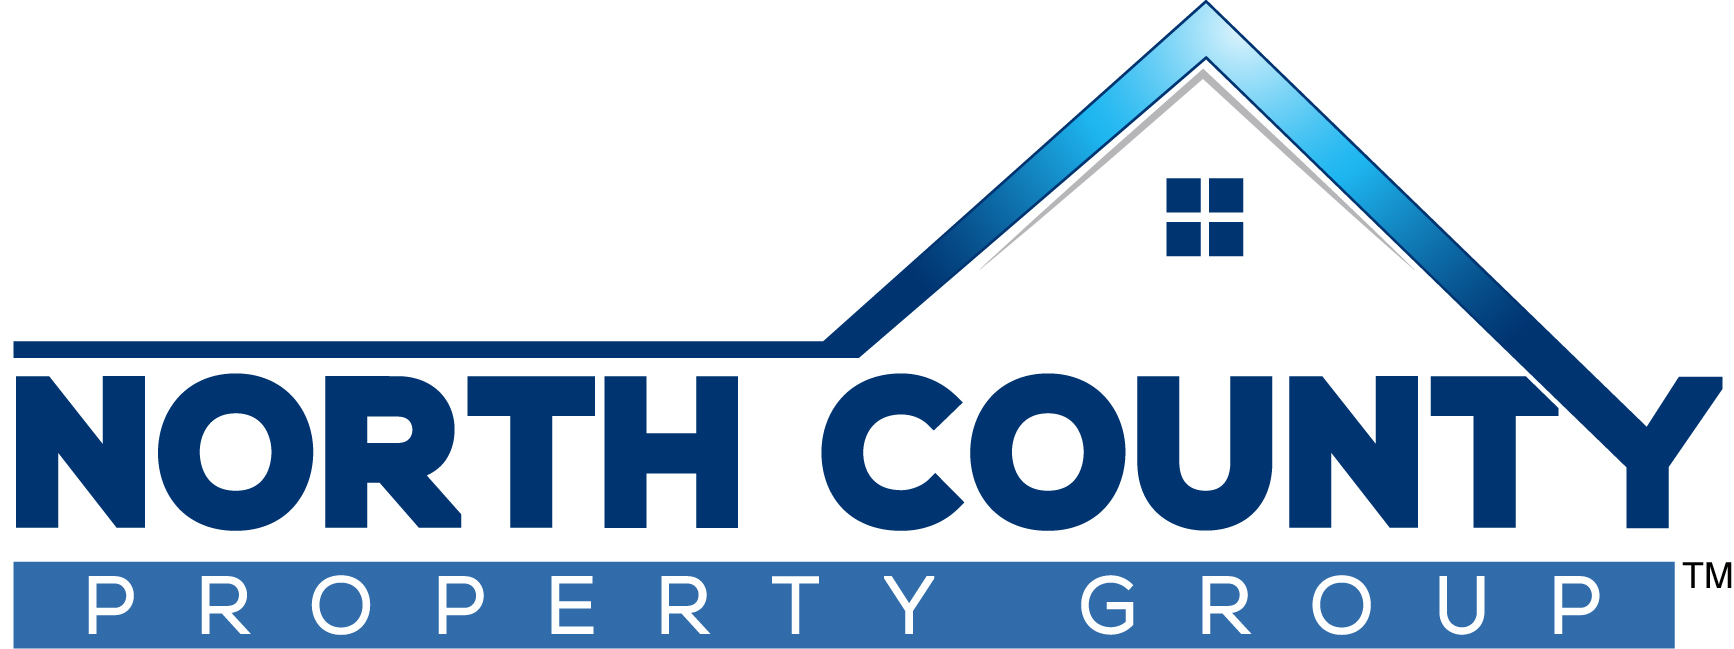 North County Property Group logo